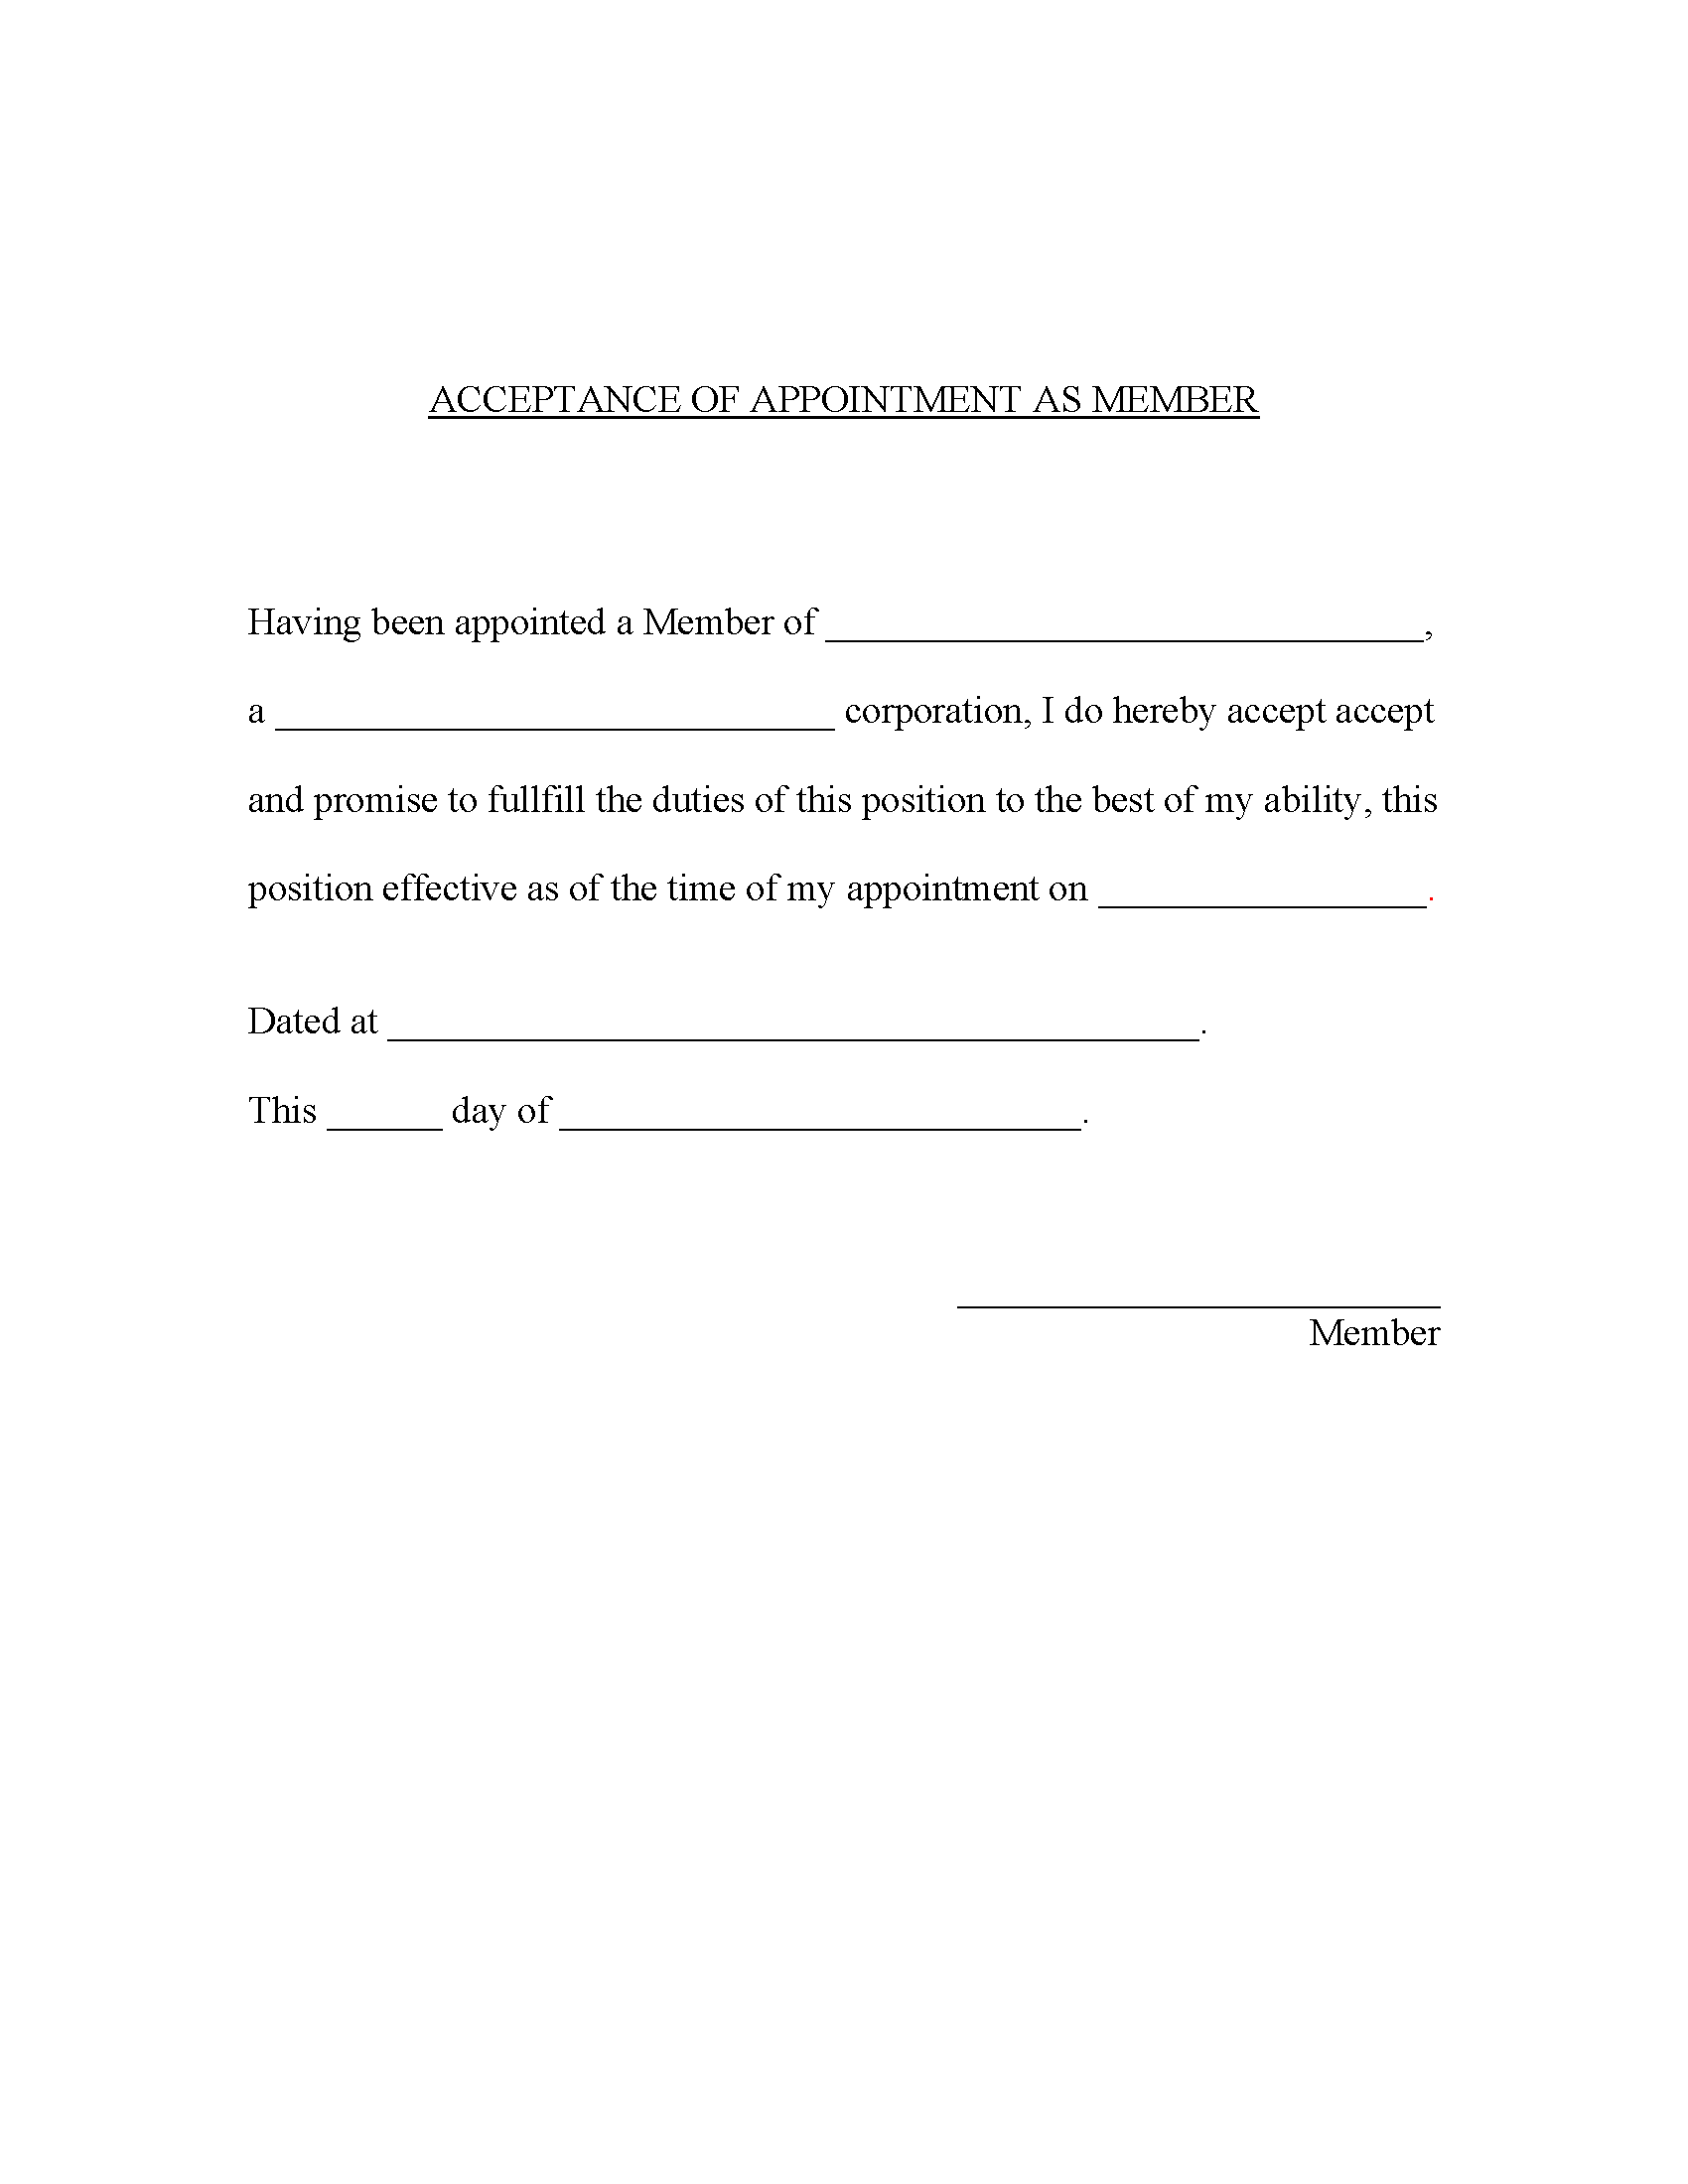 Acceptance of Appointment as Member